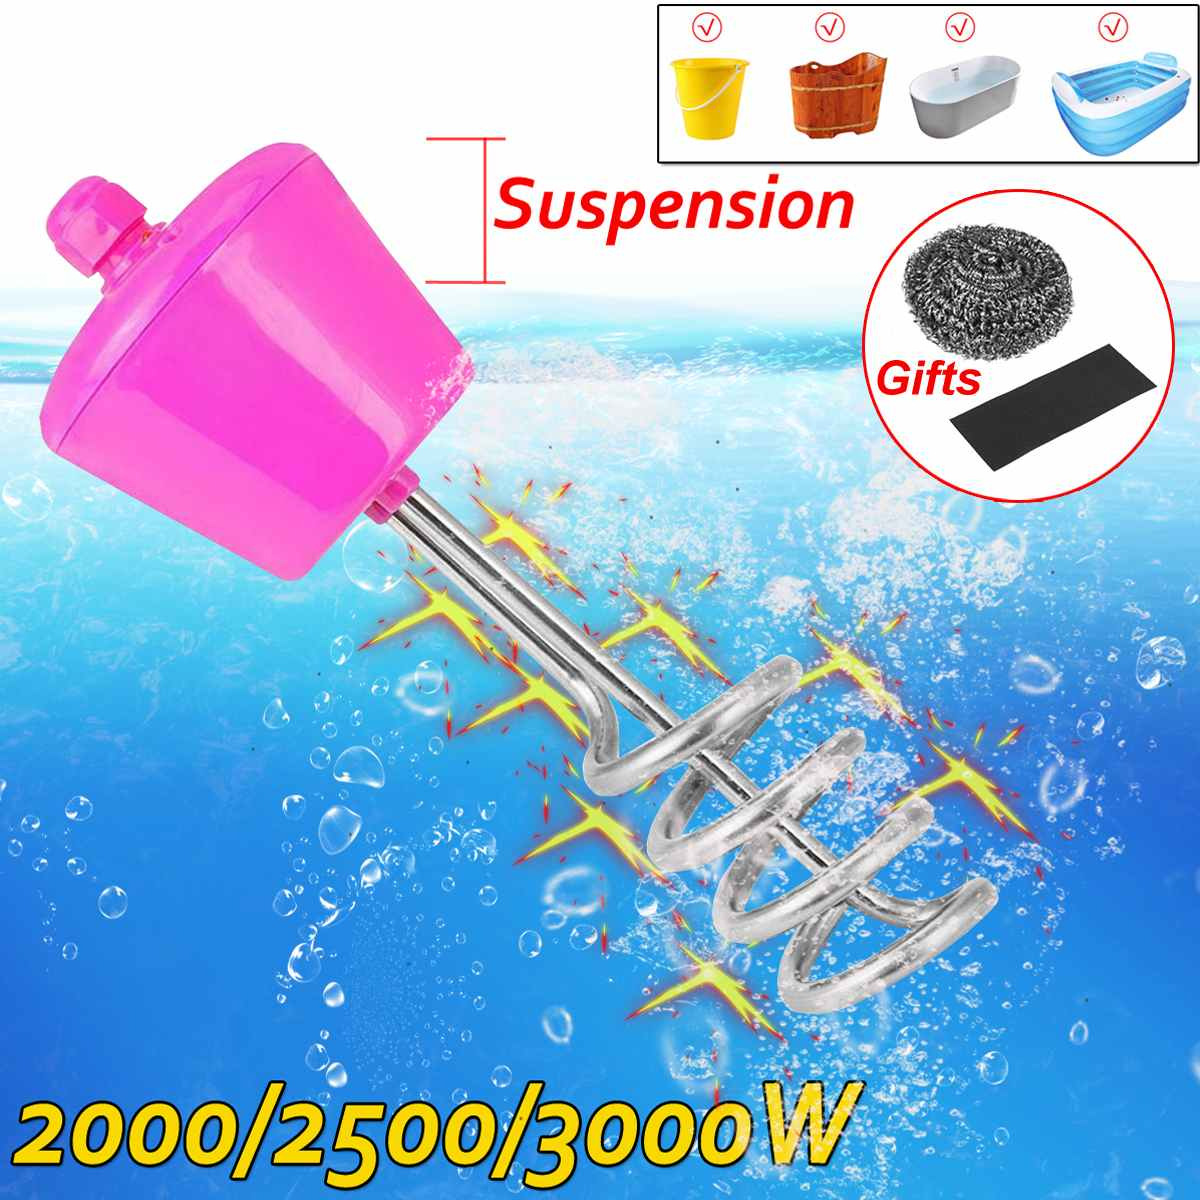 2000/2500/3000W 2M Electricity Immersion Water Heater Element Boiler Portable Water Heating Rods For Inflatable Swimming Pool